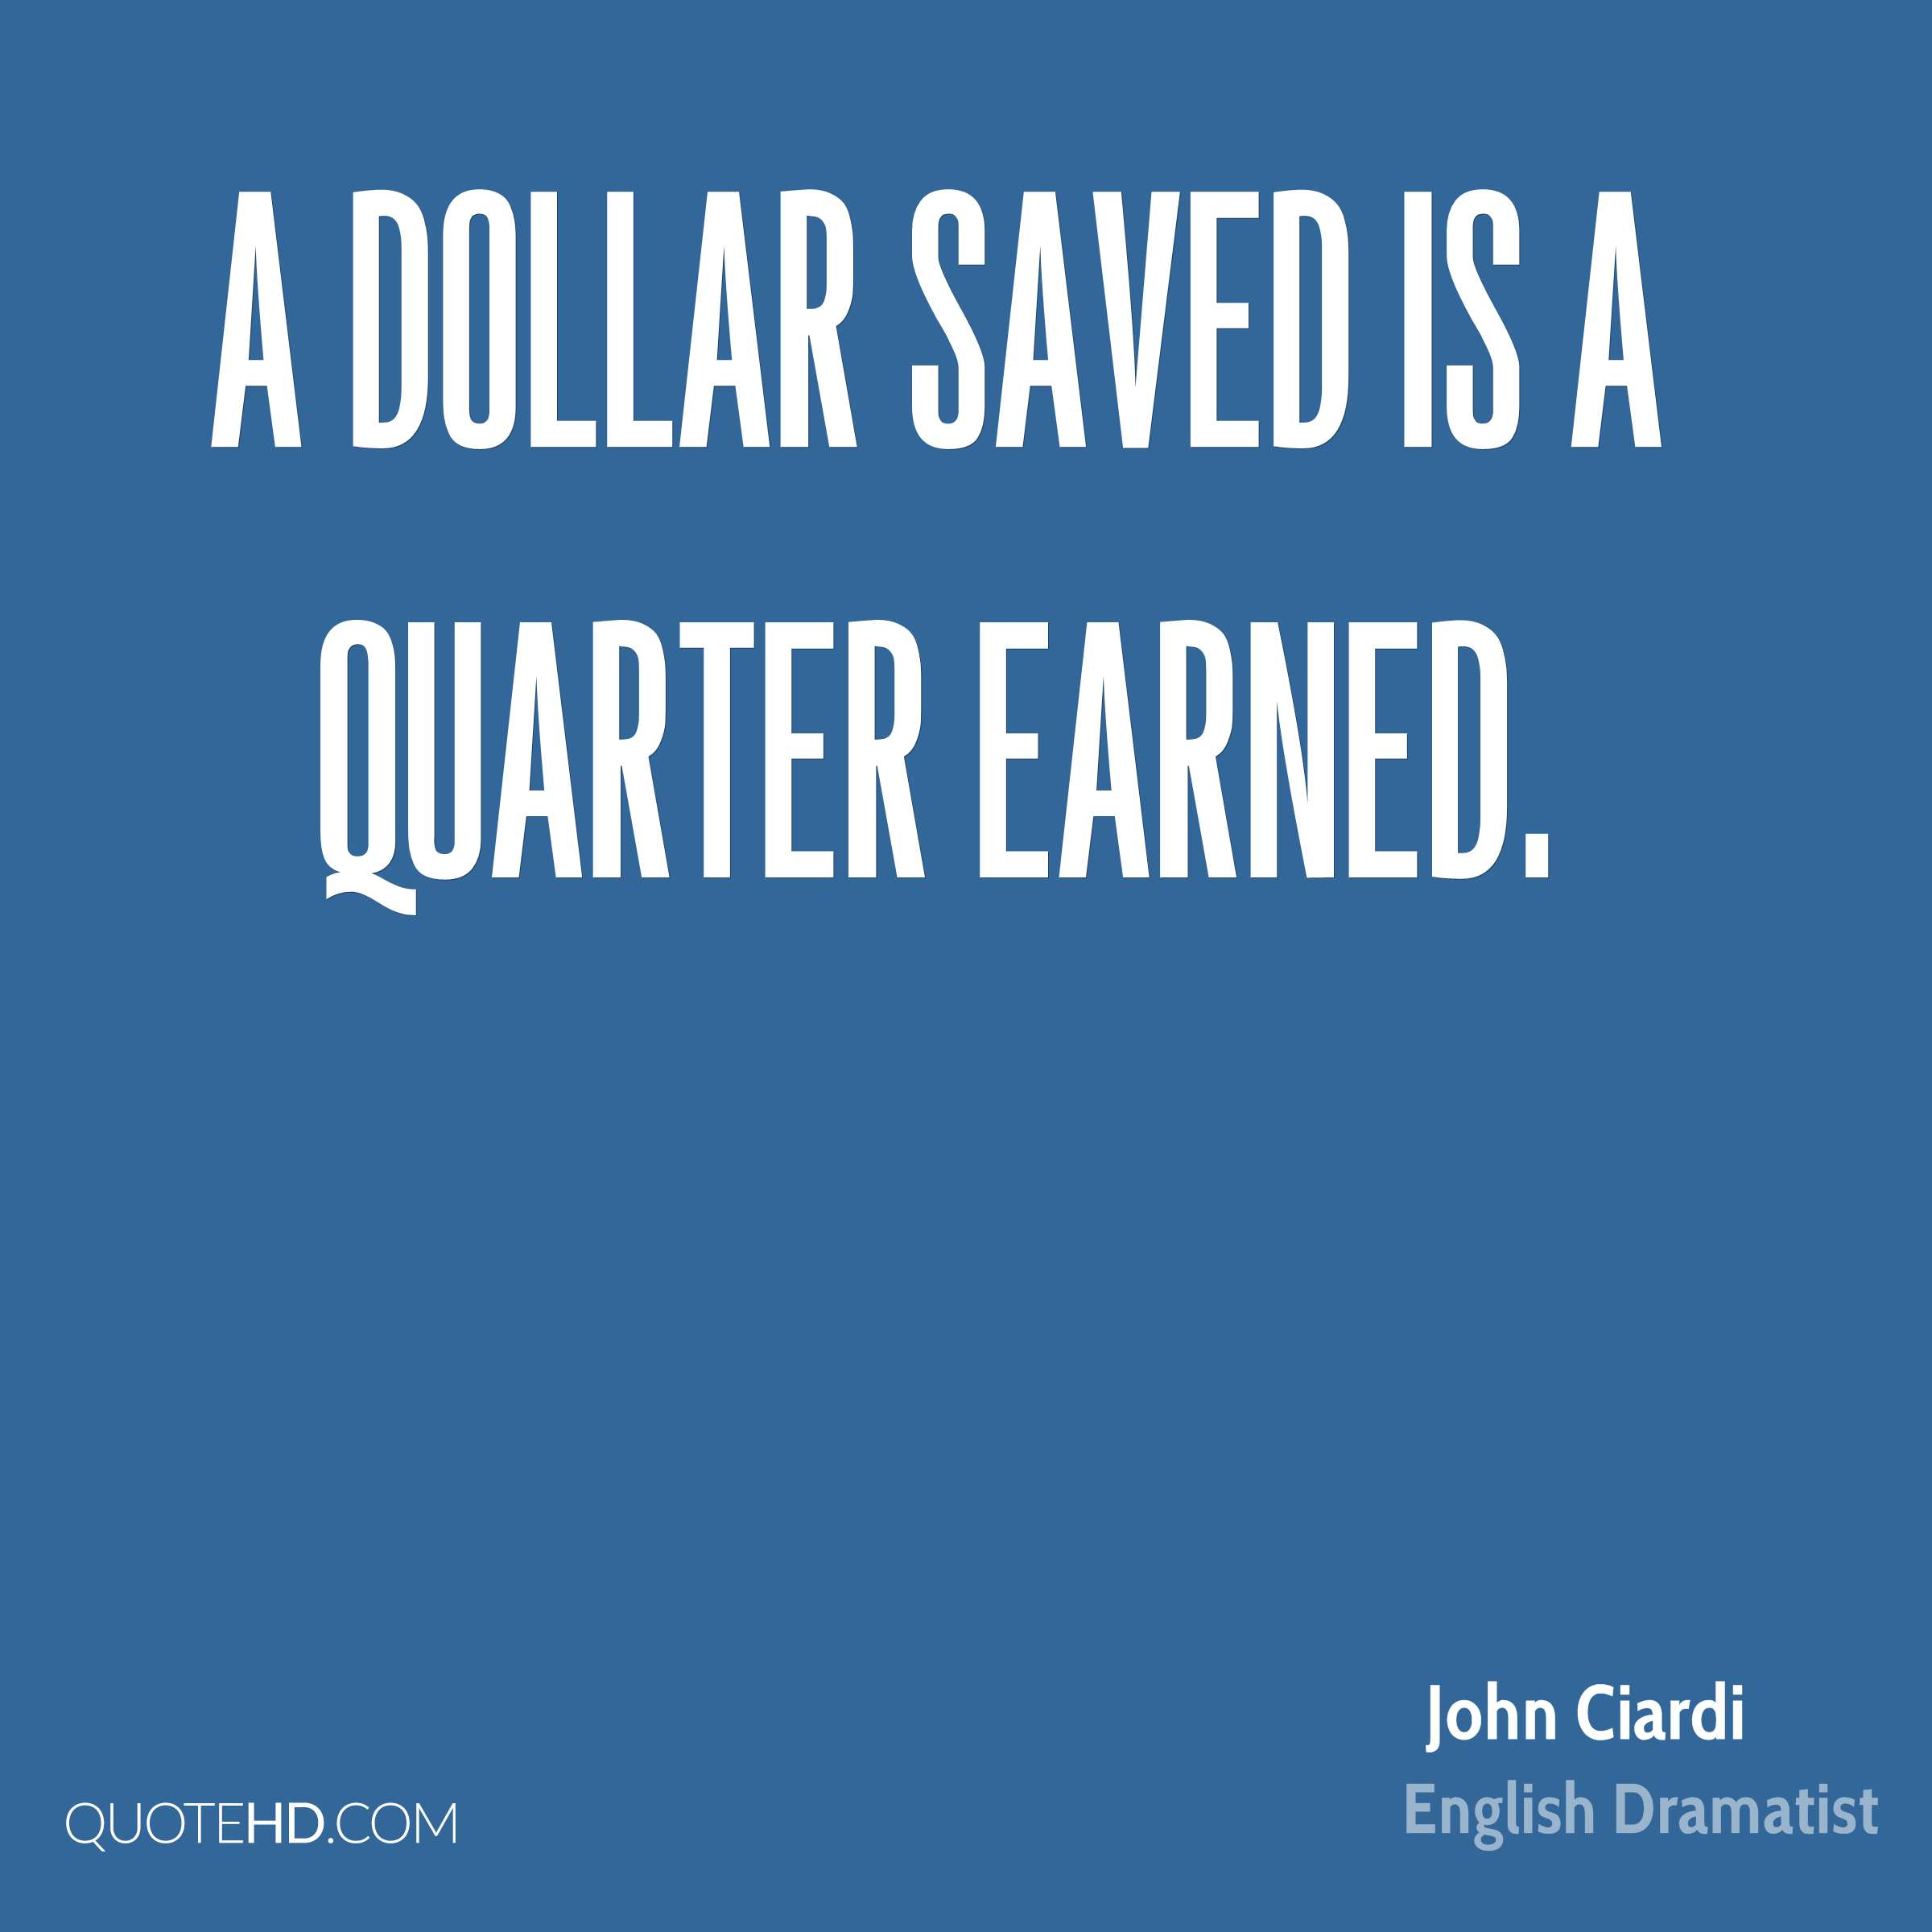 A dollar saved is a quarter earned.